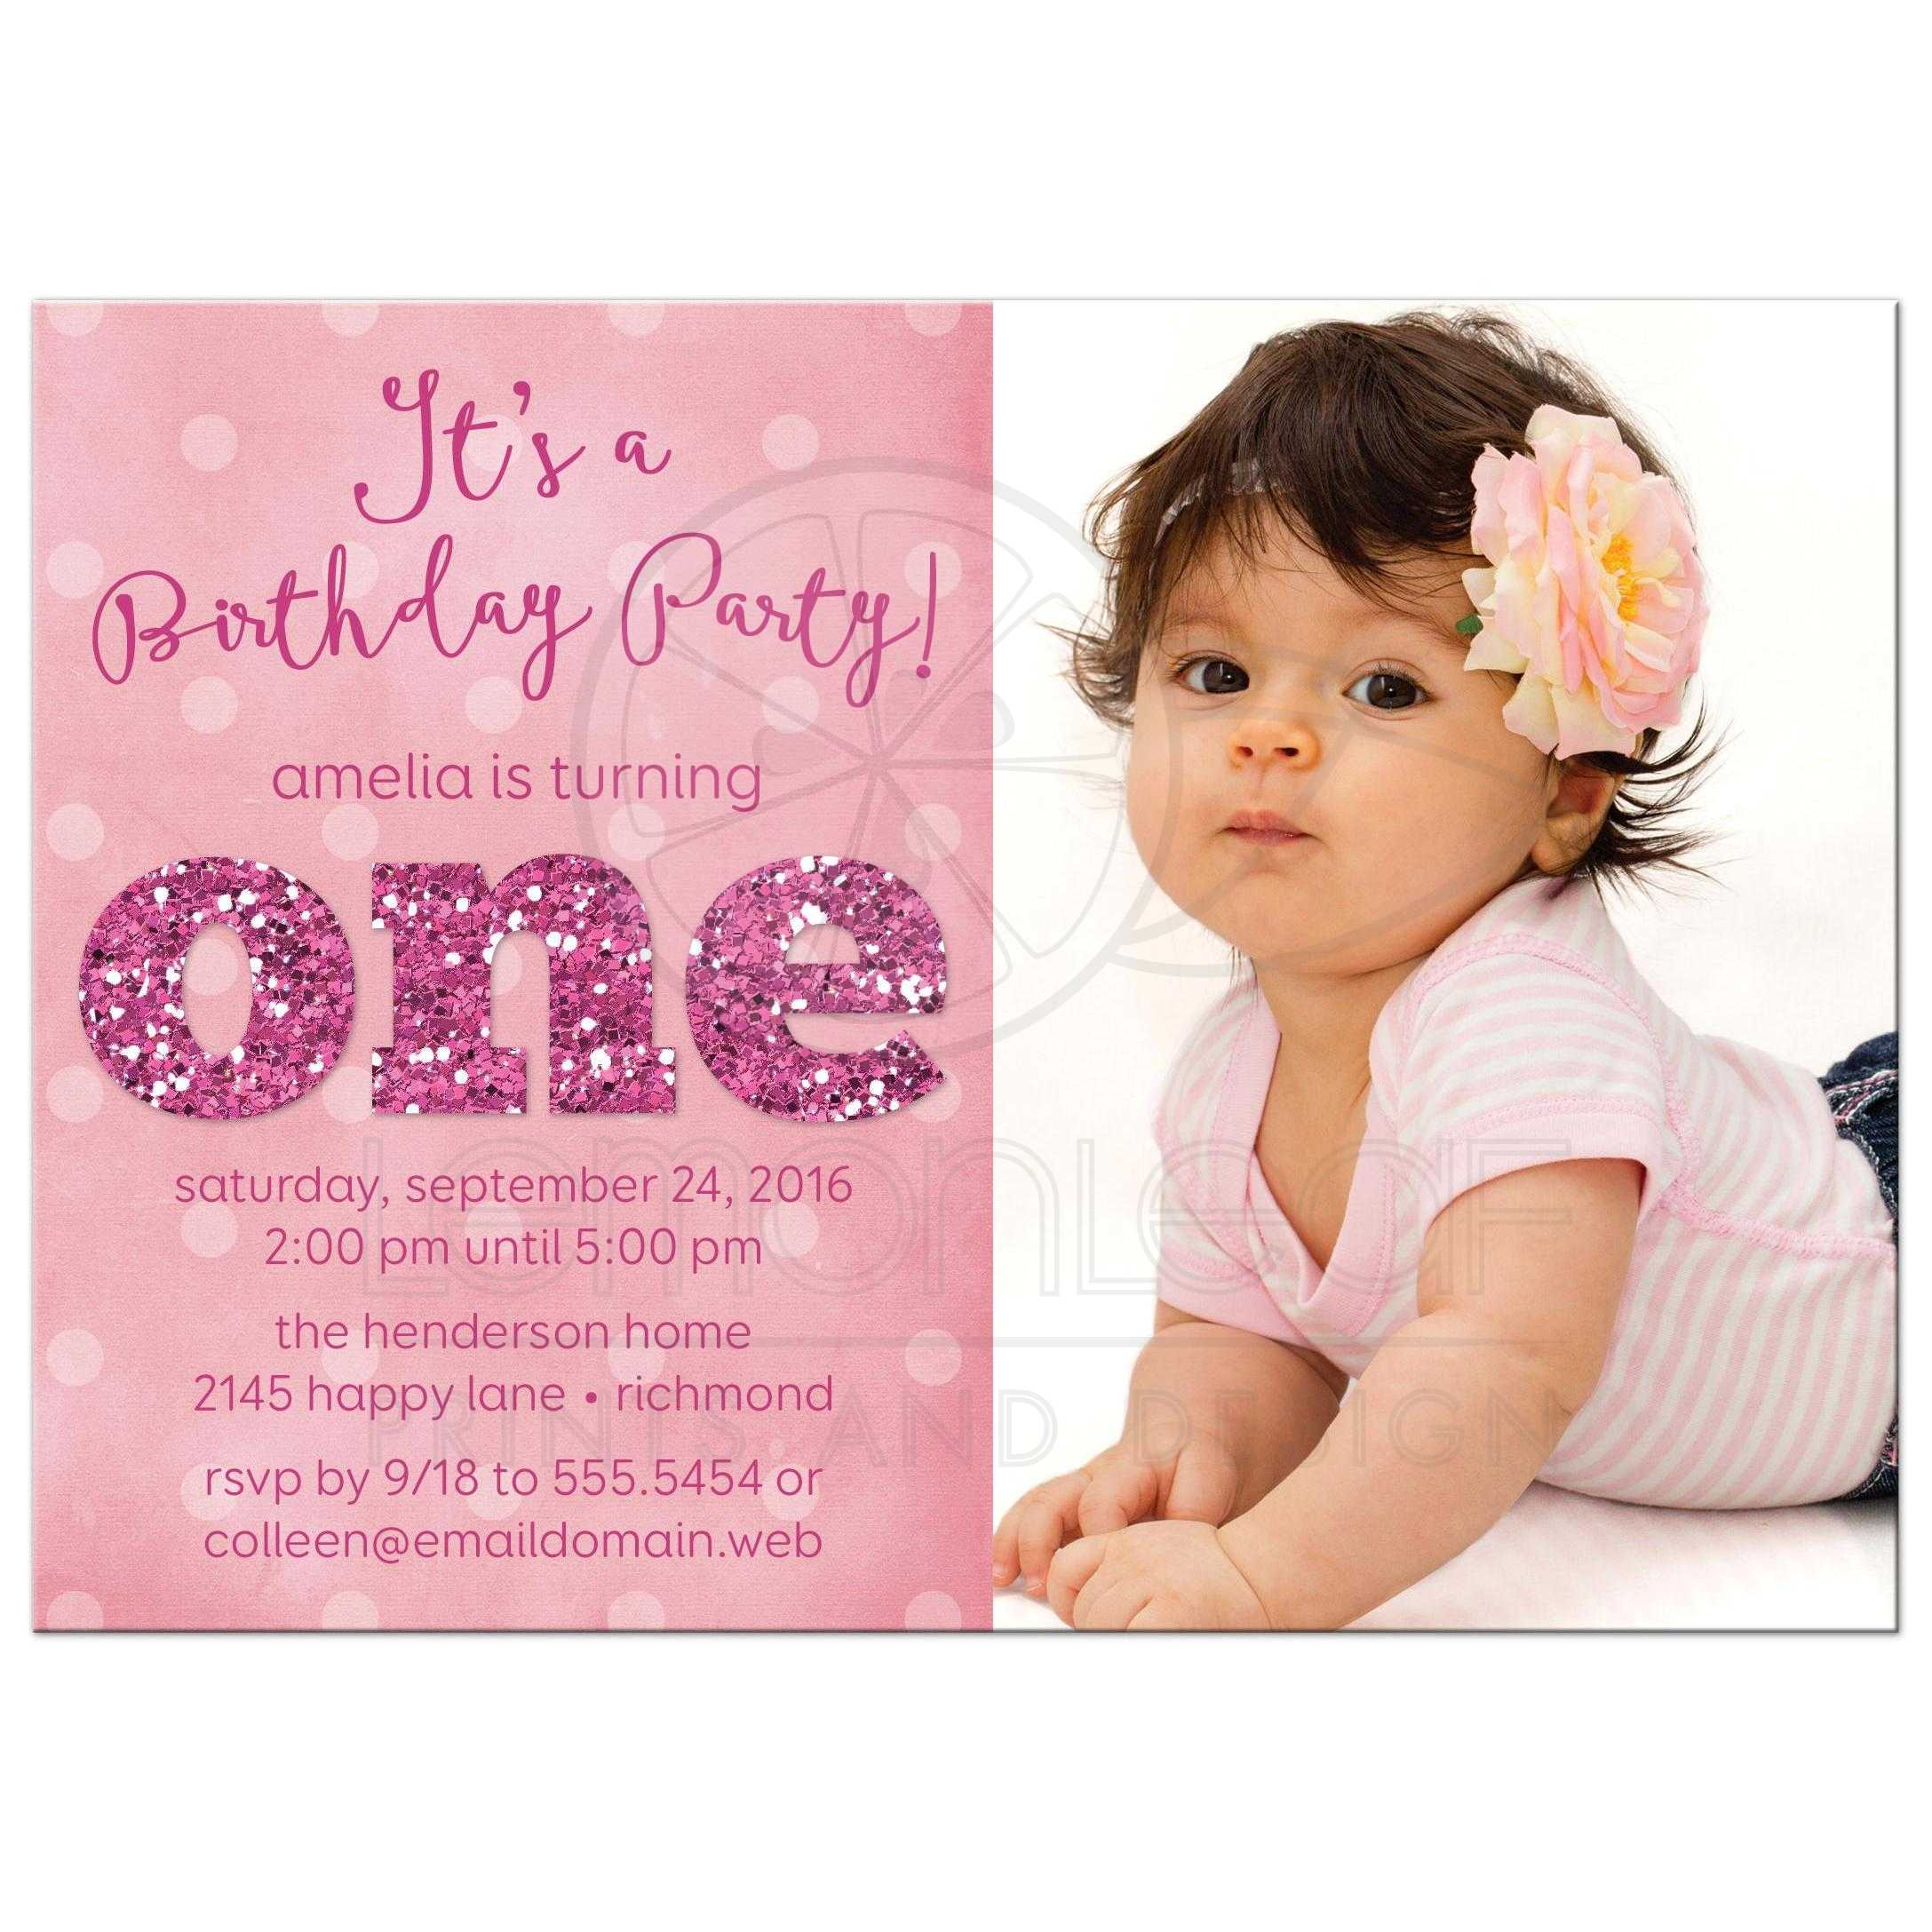 Baby birthday invites doritrcatodos baby birthday invites filmwisefo